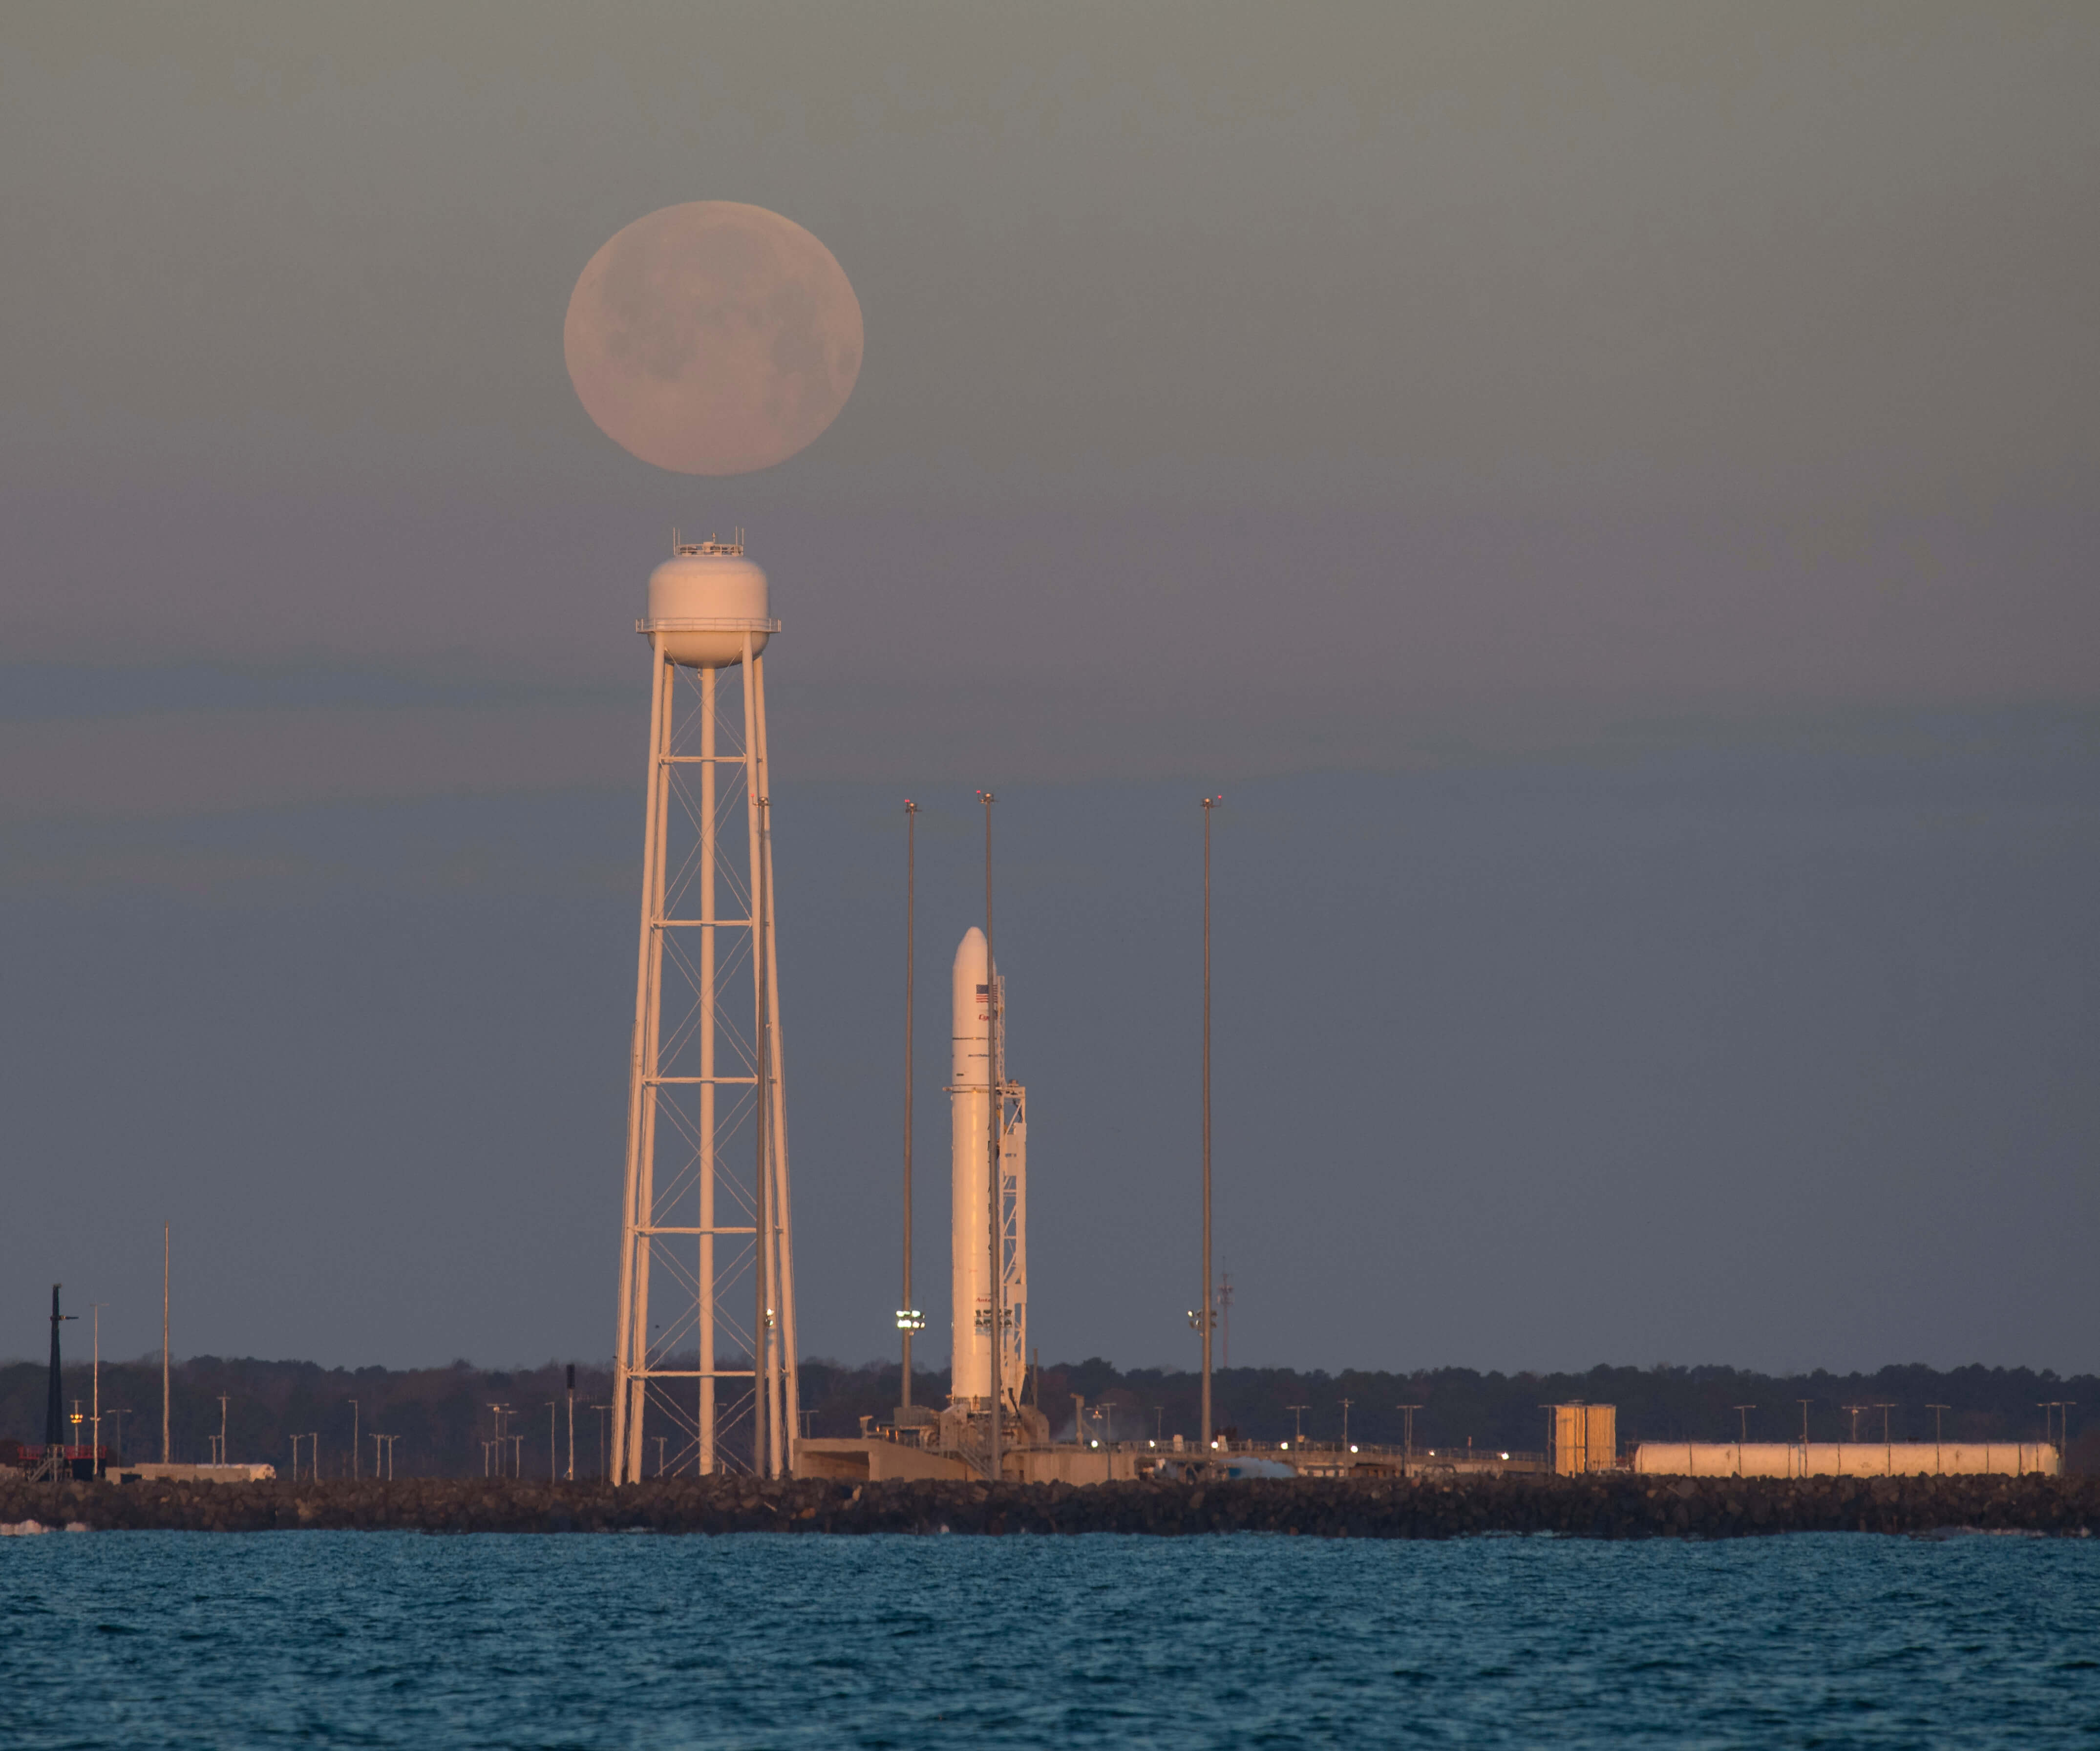 Successful launch of Antares